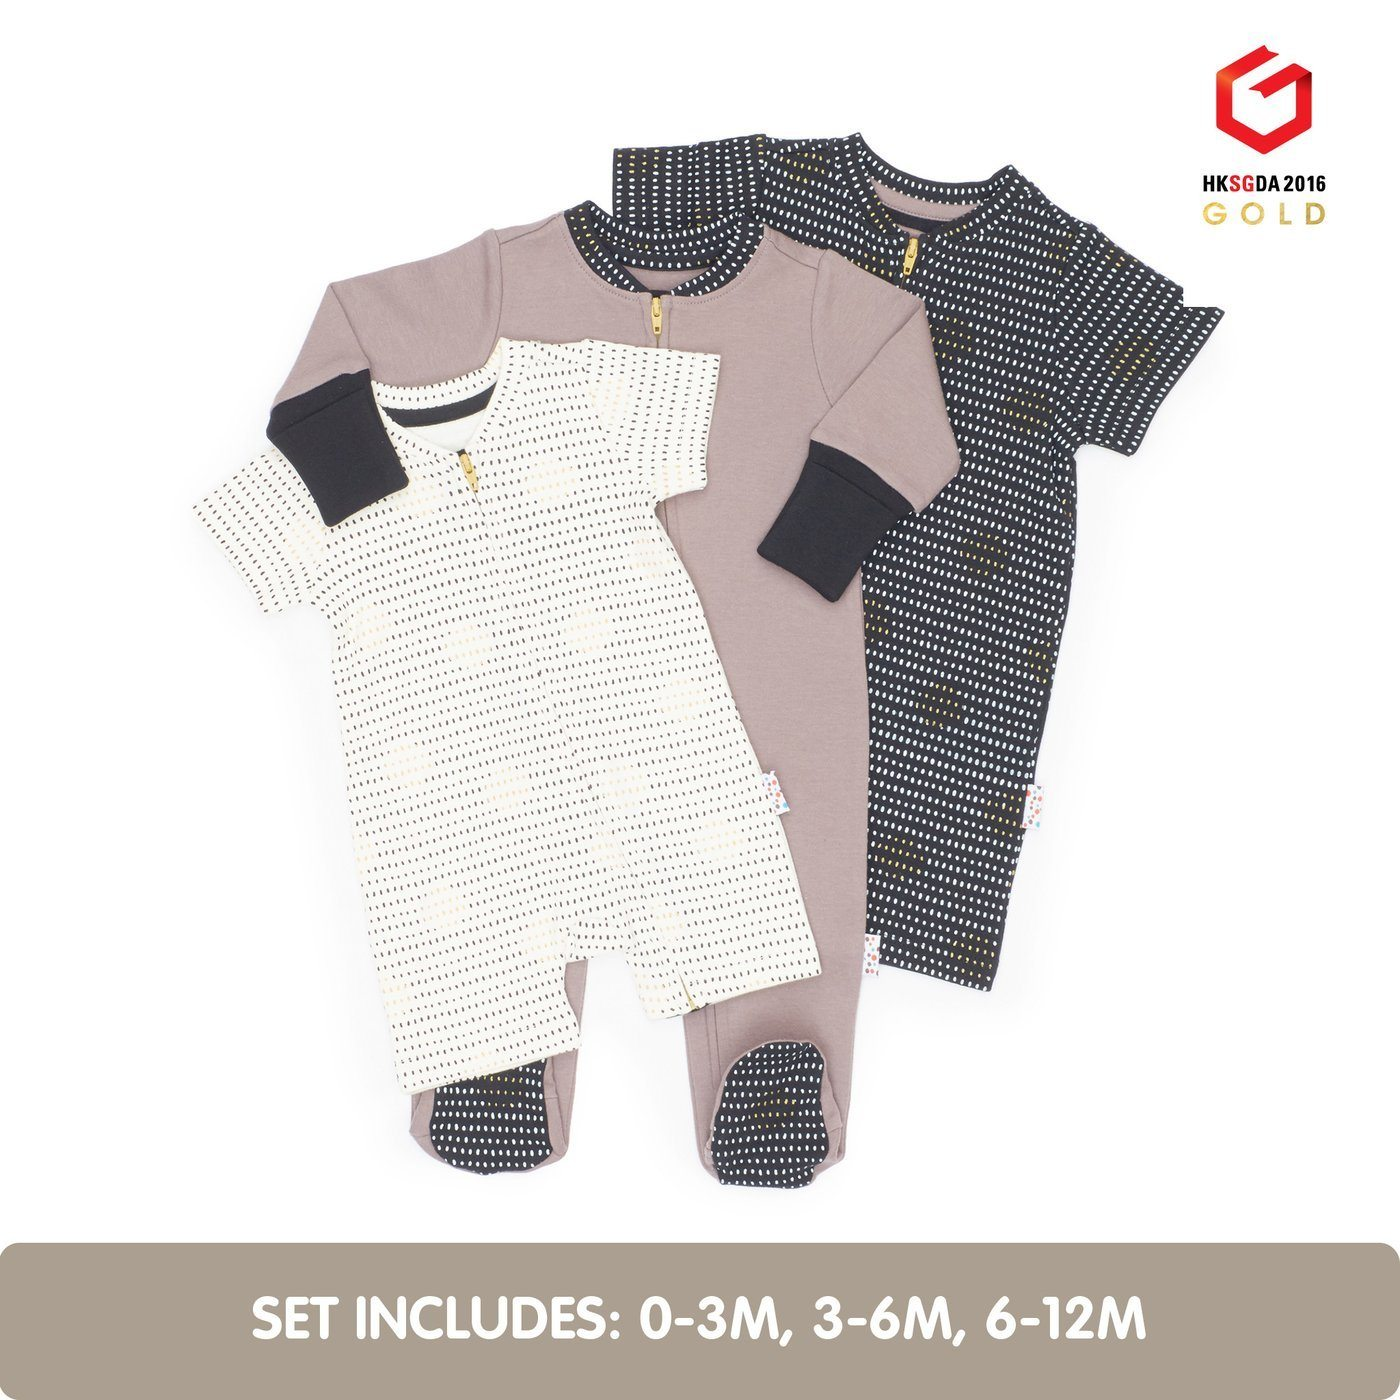 IBWD X Naiise - Growing Kit (3pcs Set), Newborn Tropical Babies Kids Clothing Buy Me Design